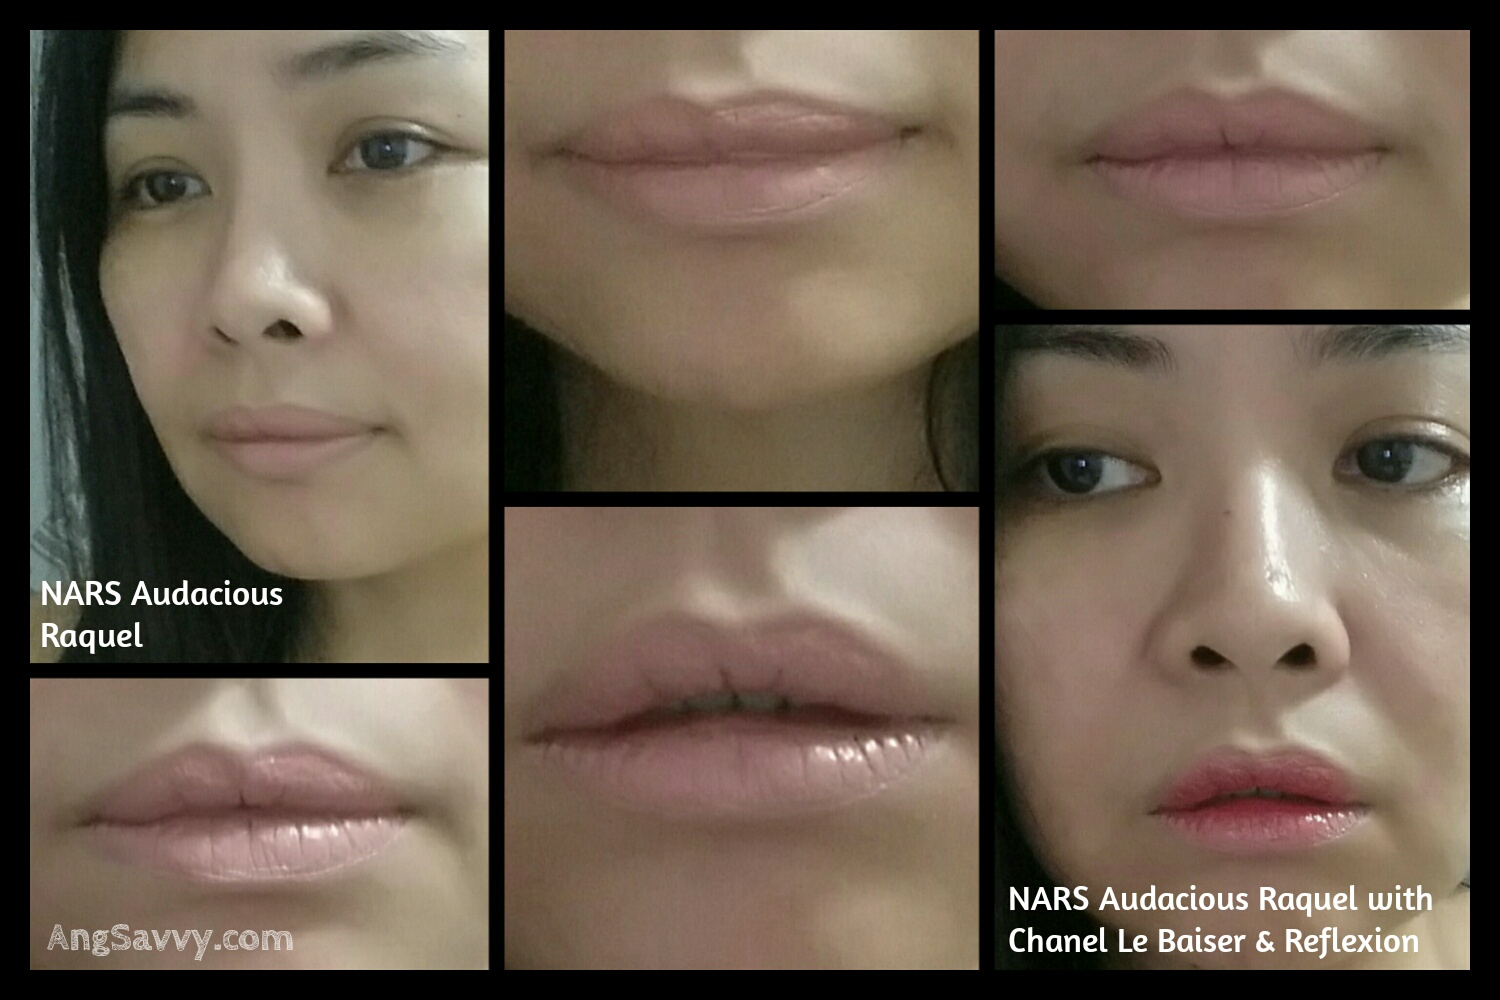 Swatches for NARS Audacious Lipstick in Raquel